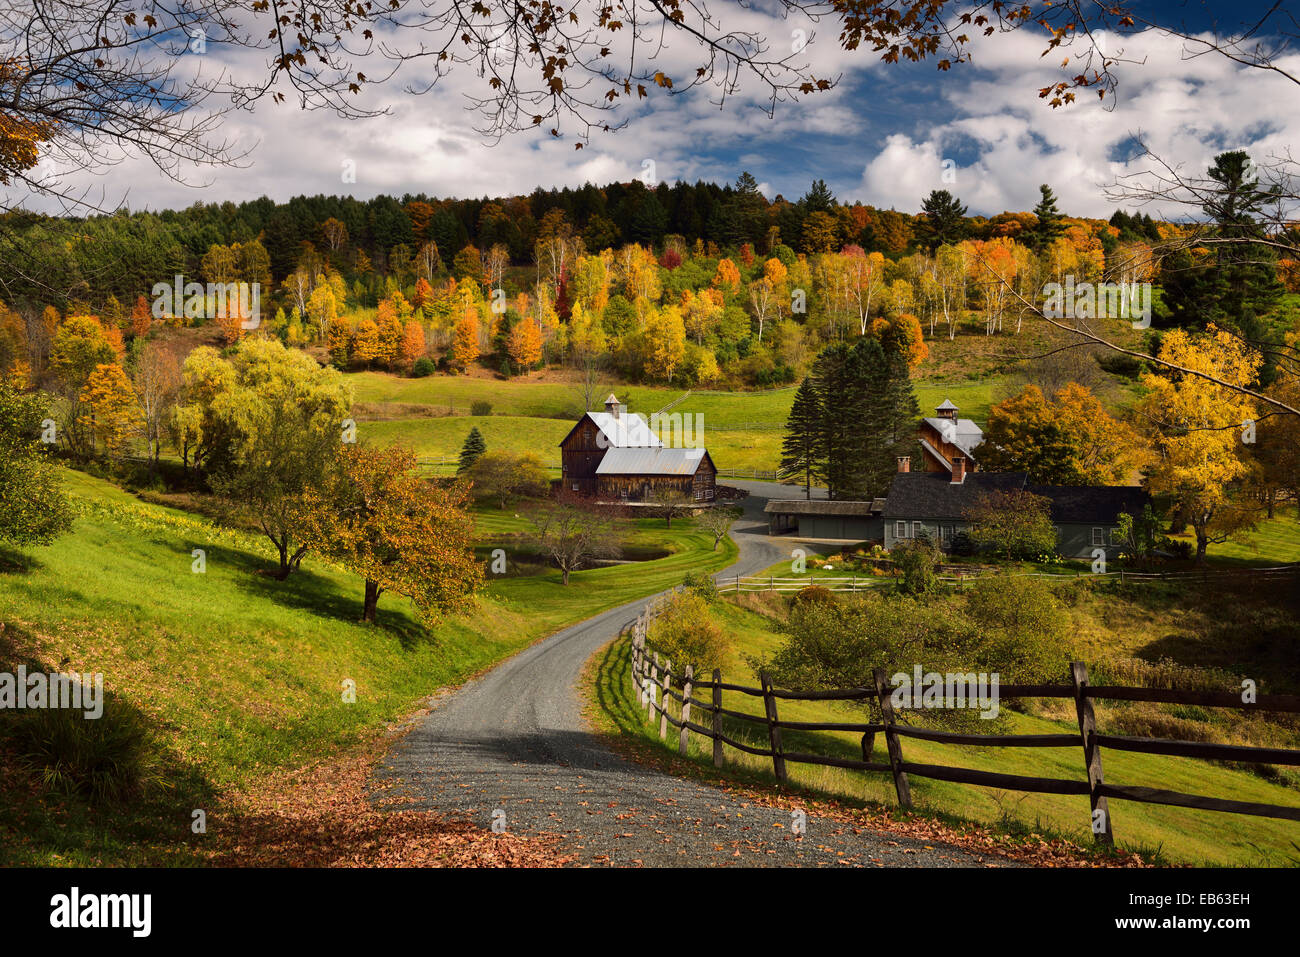 Fall tree colors at Sleepy Hollow Farm Homestead on Cloudland Road Woodstock Vermont USAStock Photo